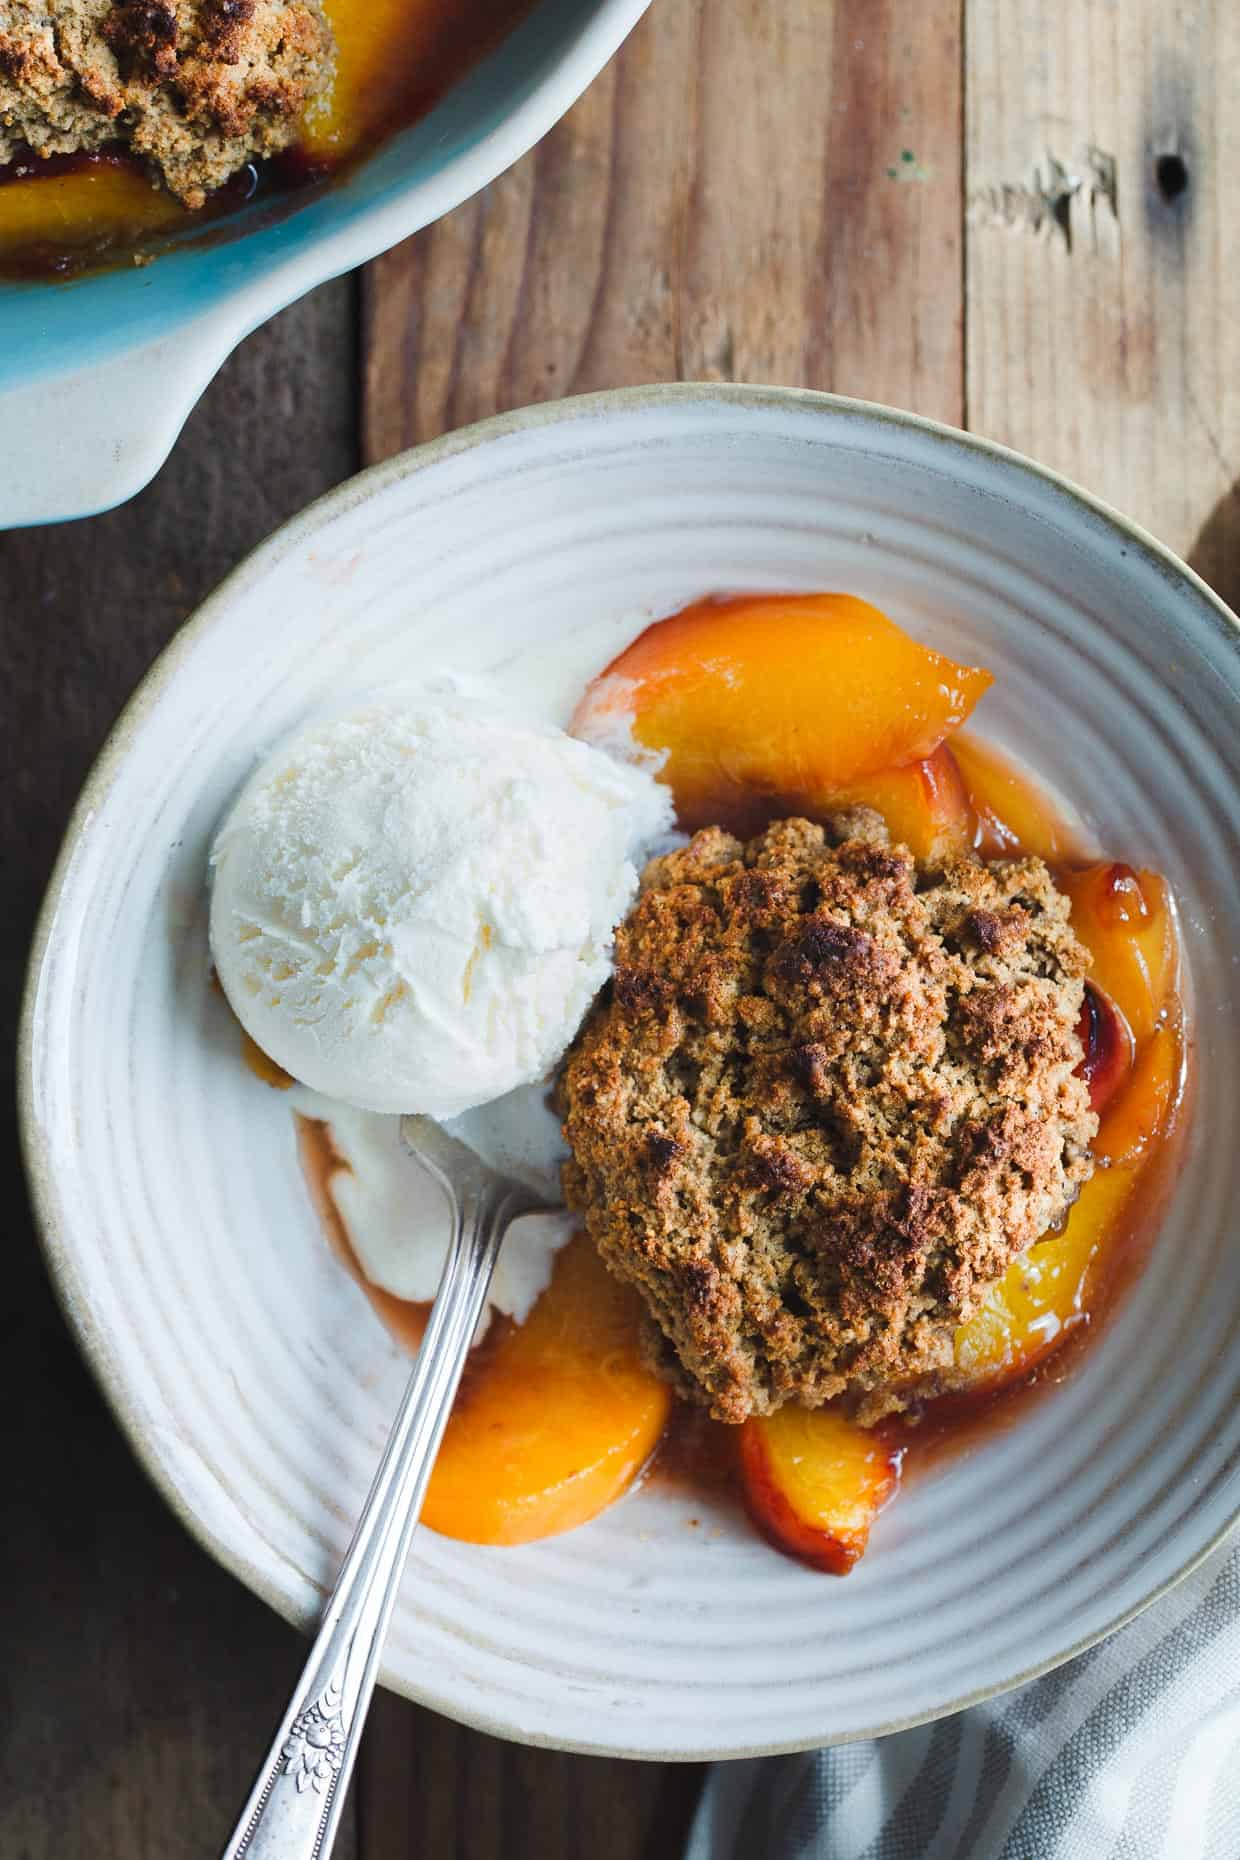 Gluten-Free-Peach-Cobbler-Brown-Butter-Chestnut-Biscuits-5